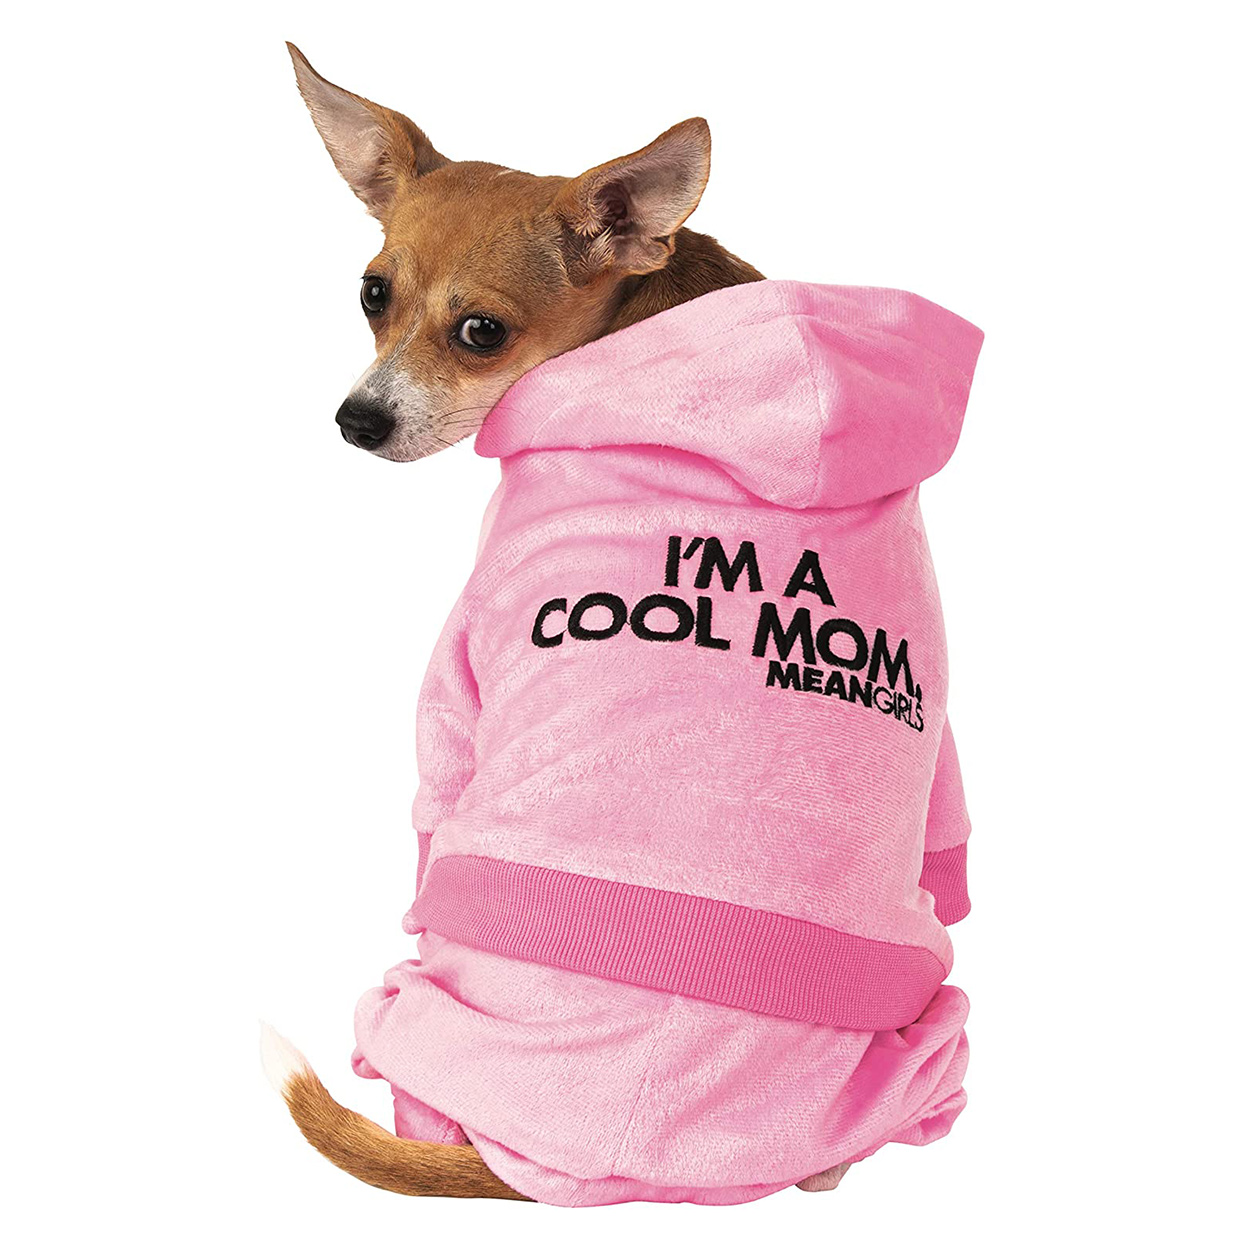 Dog wearing a Rubie's Mean Girls Mom Track Suit Pet Costume on a white background